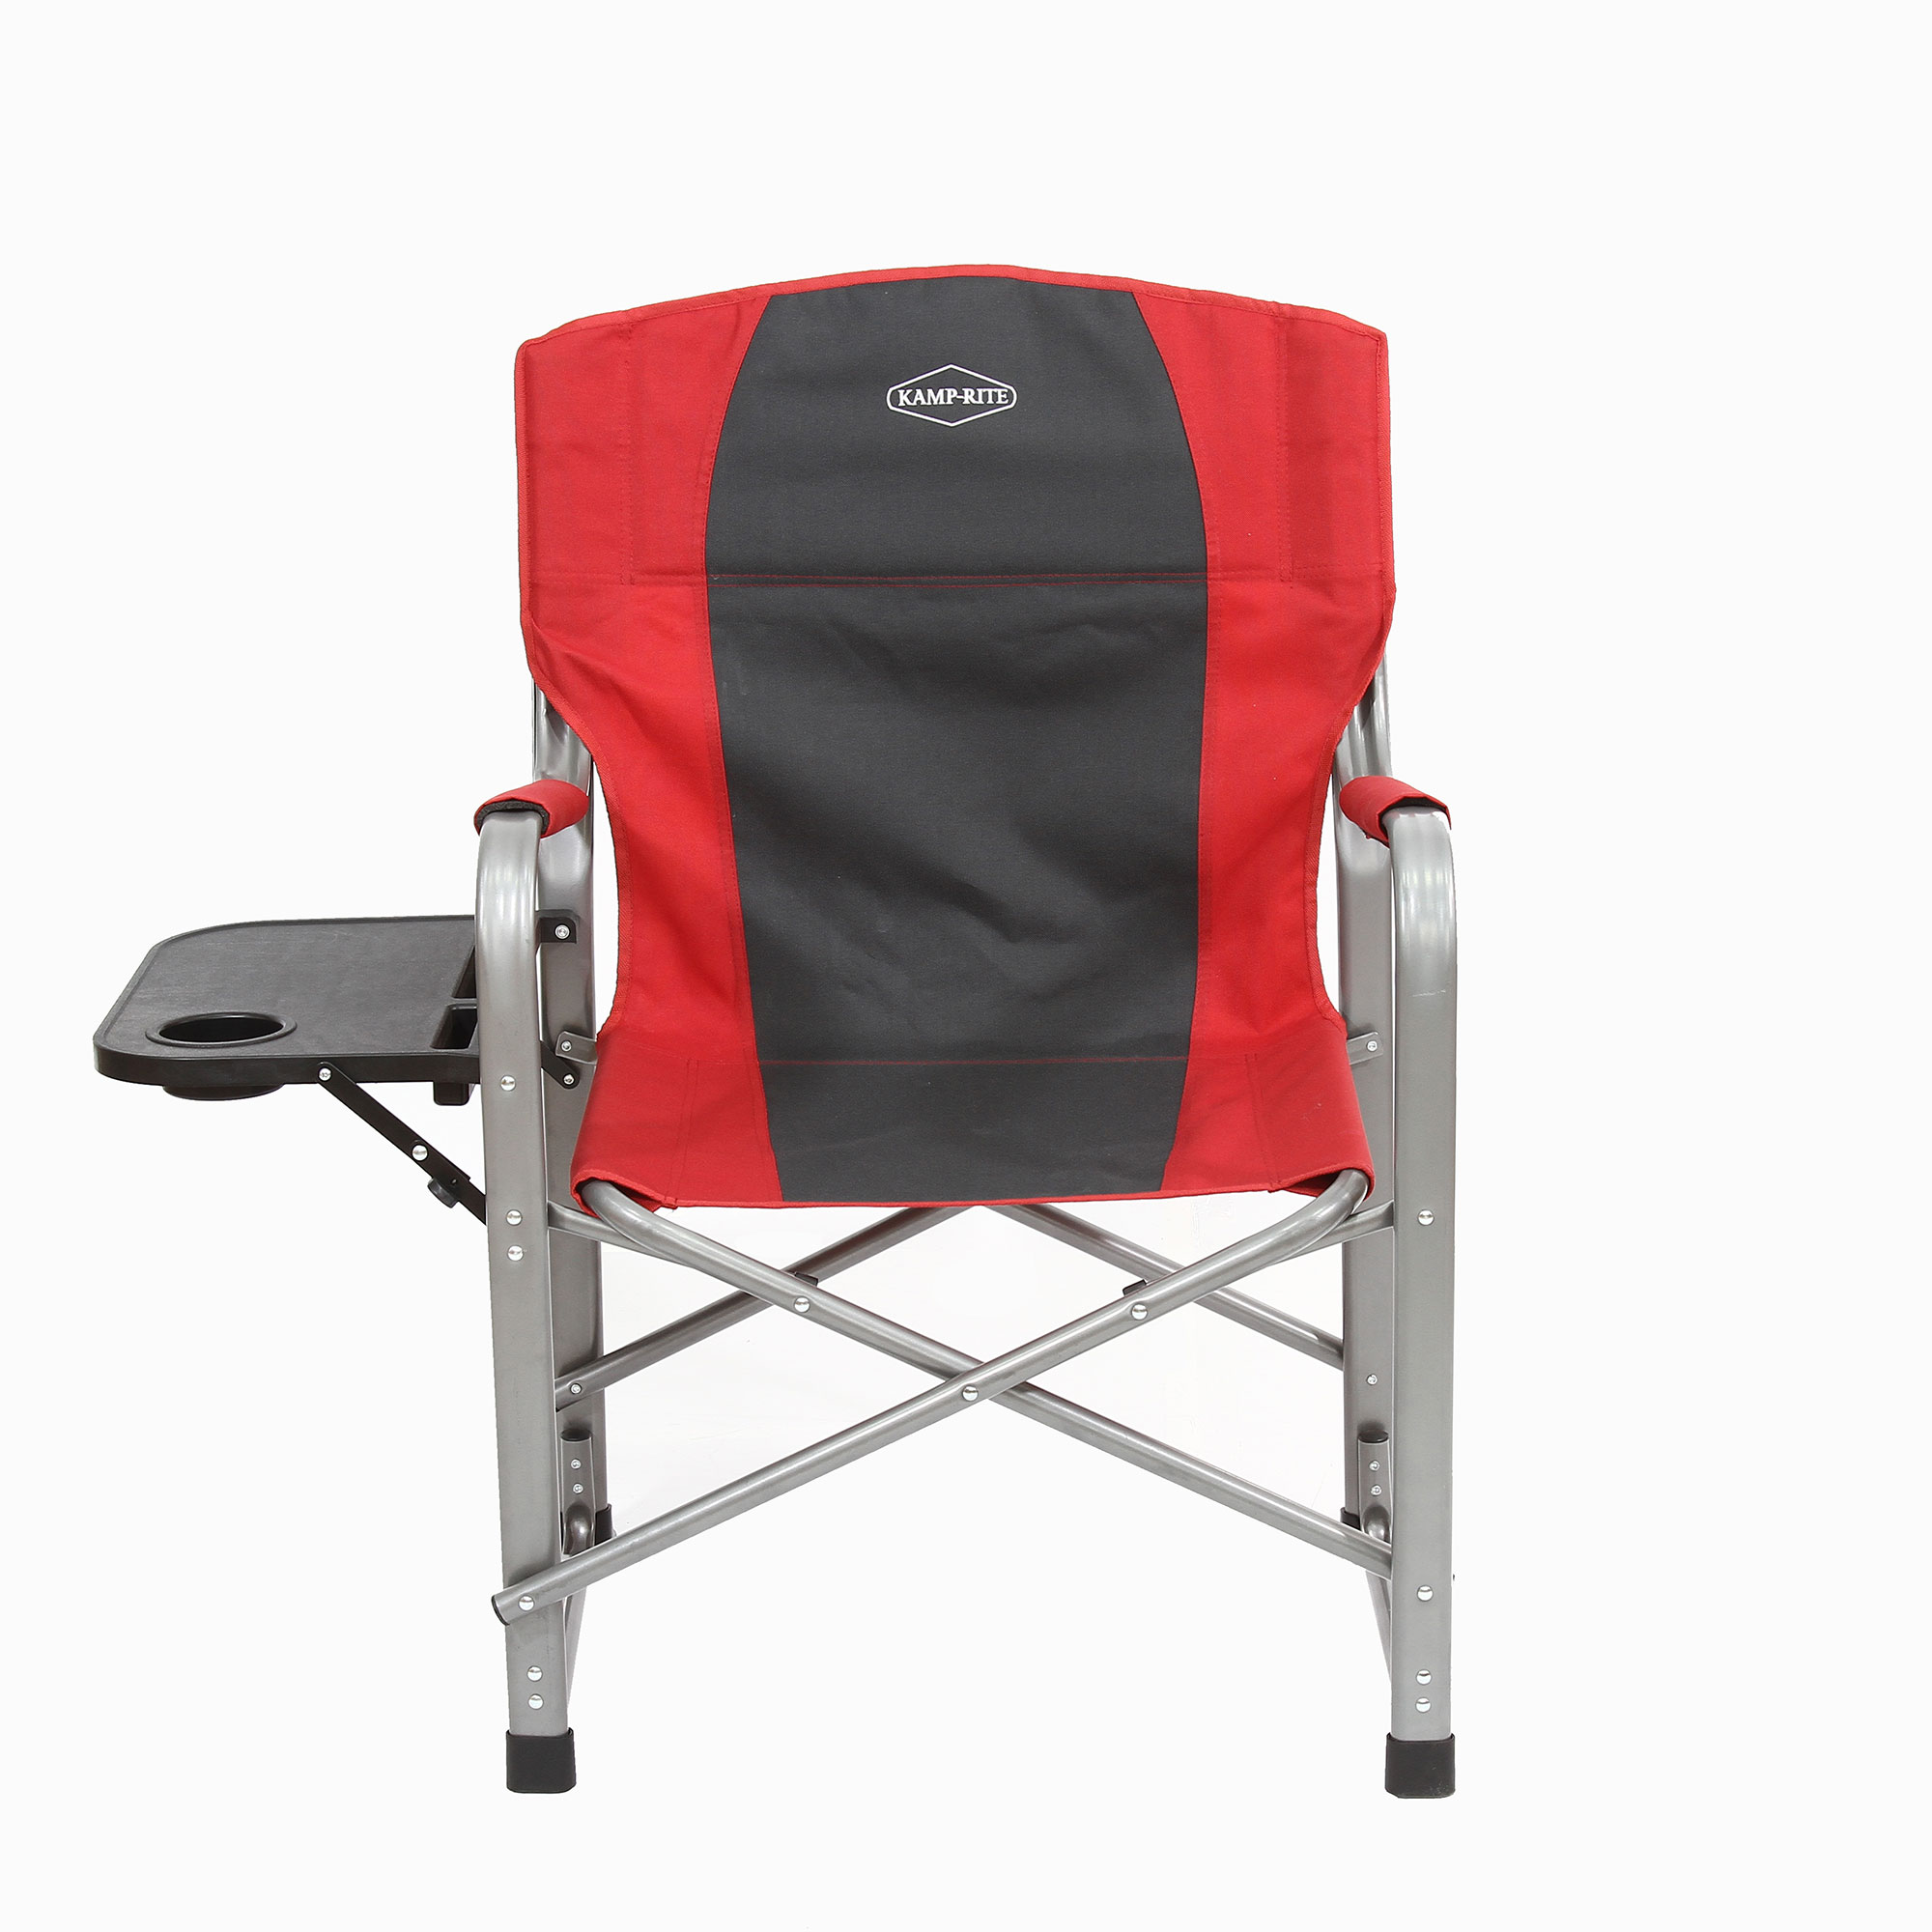 Folding Directors Chair With Side Table Kamp Rite Outdoor Camping Tailgating Folding Director S Chair W Side Table Red